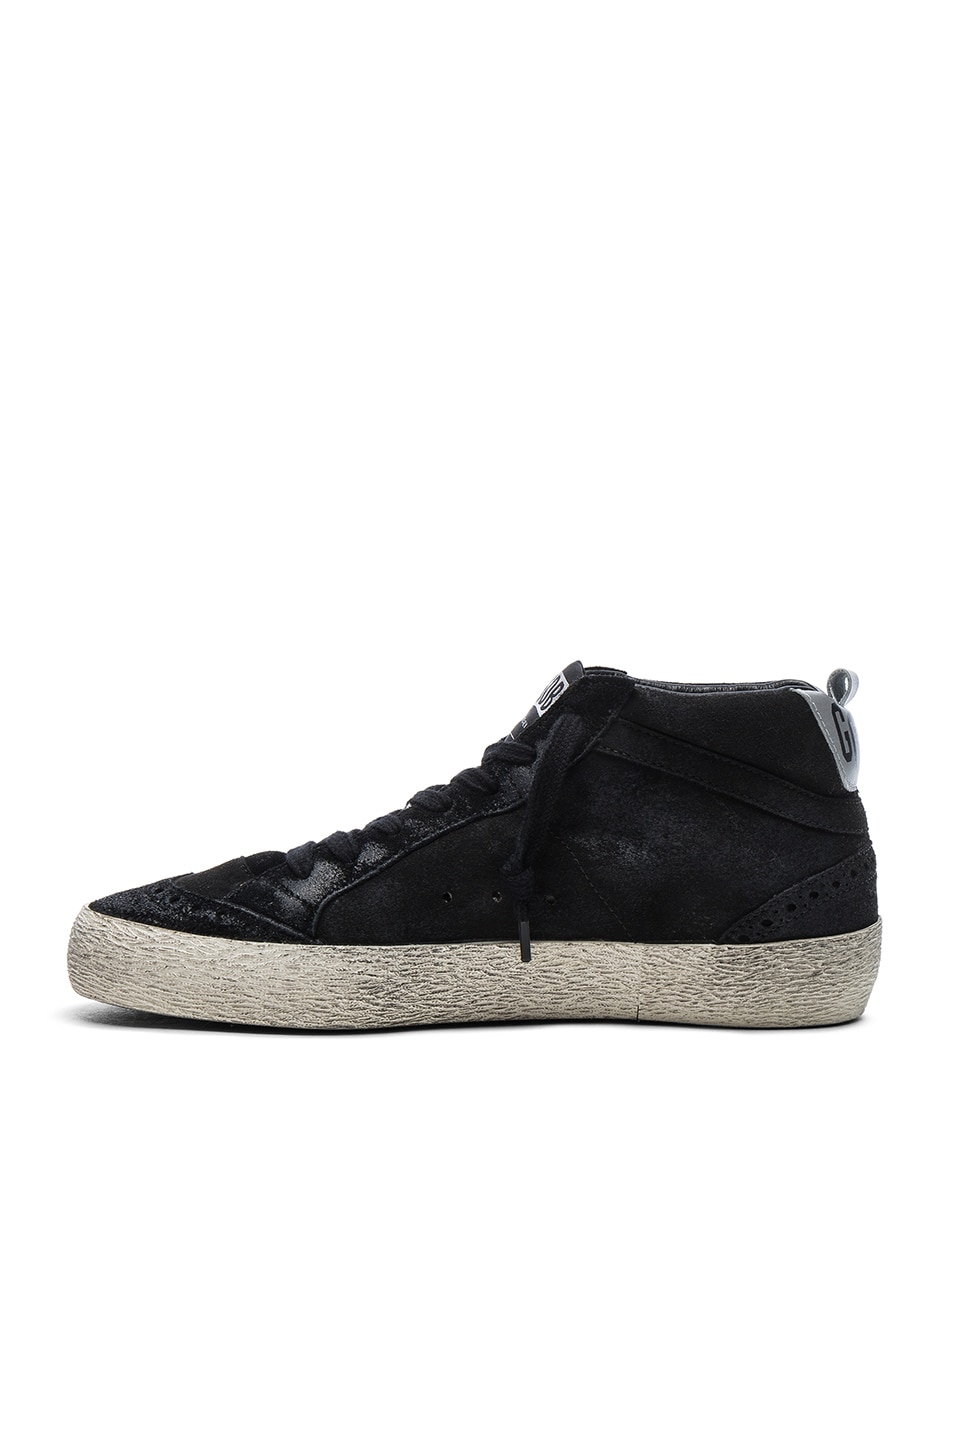 Image 5 of Golden Goose Suede Mid Star Sneakers in Black & Silver